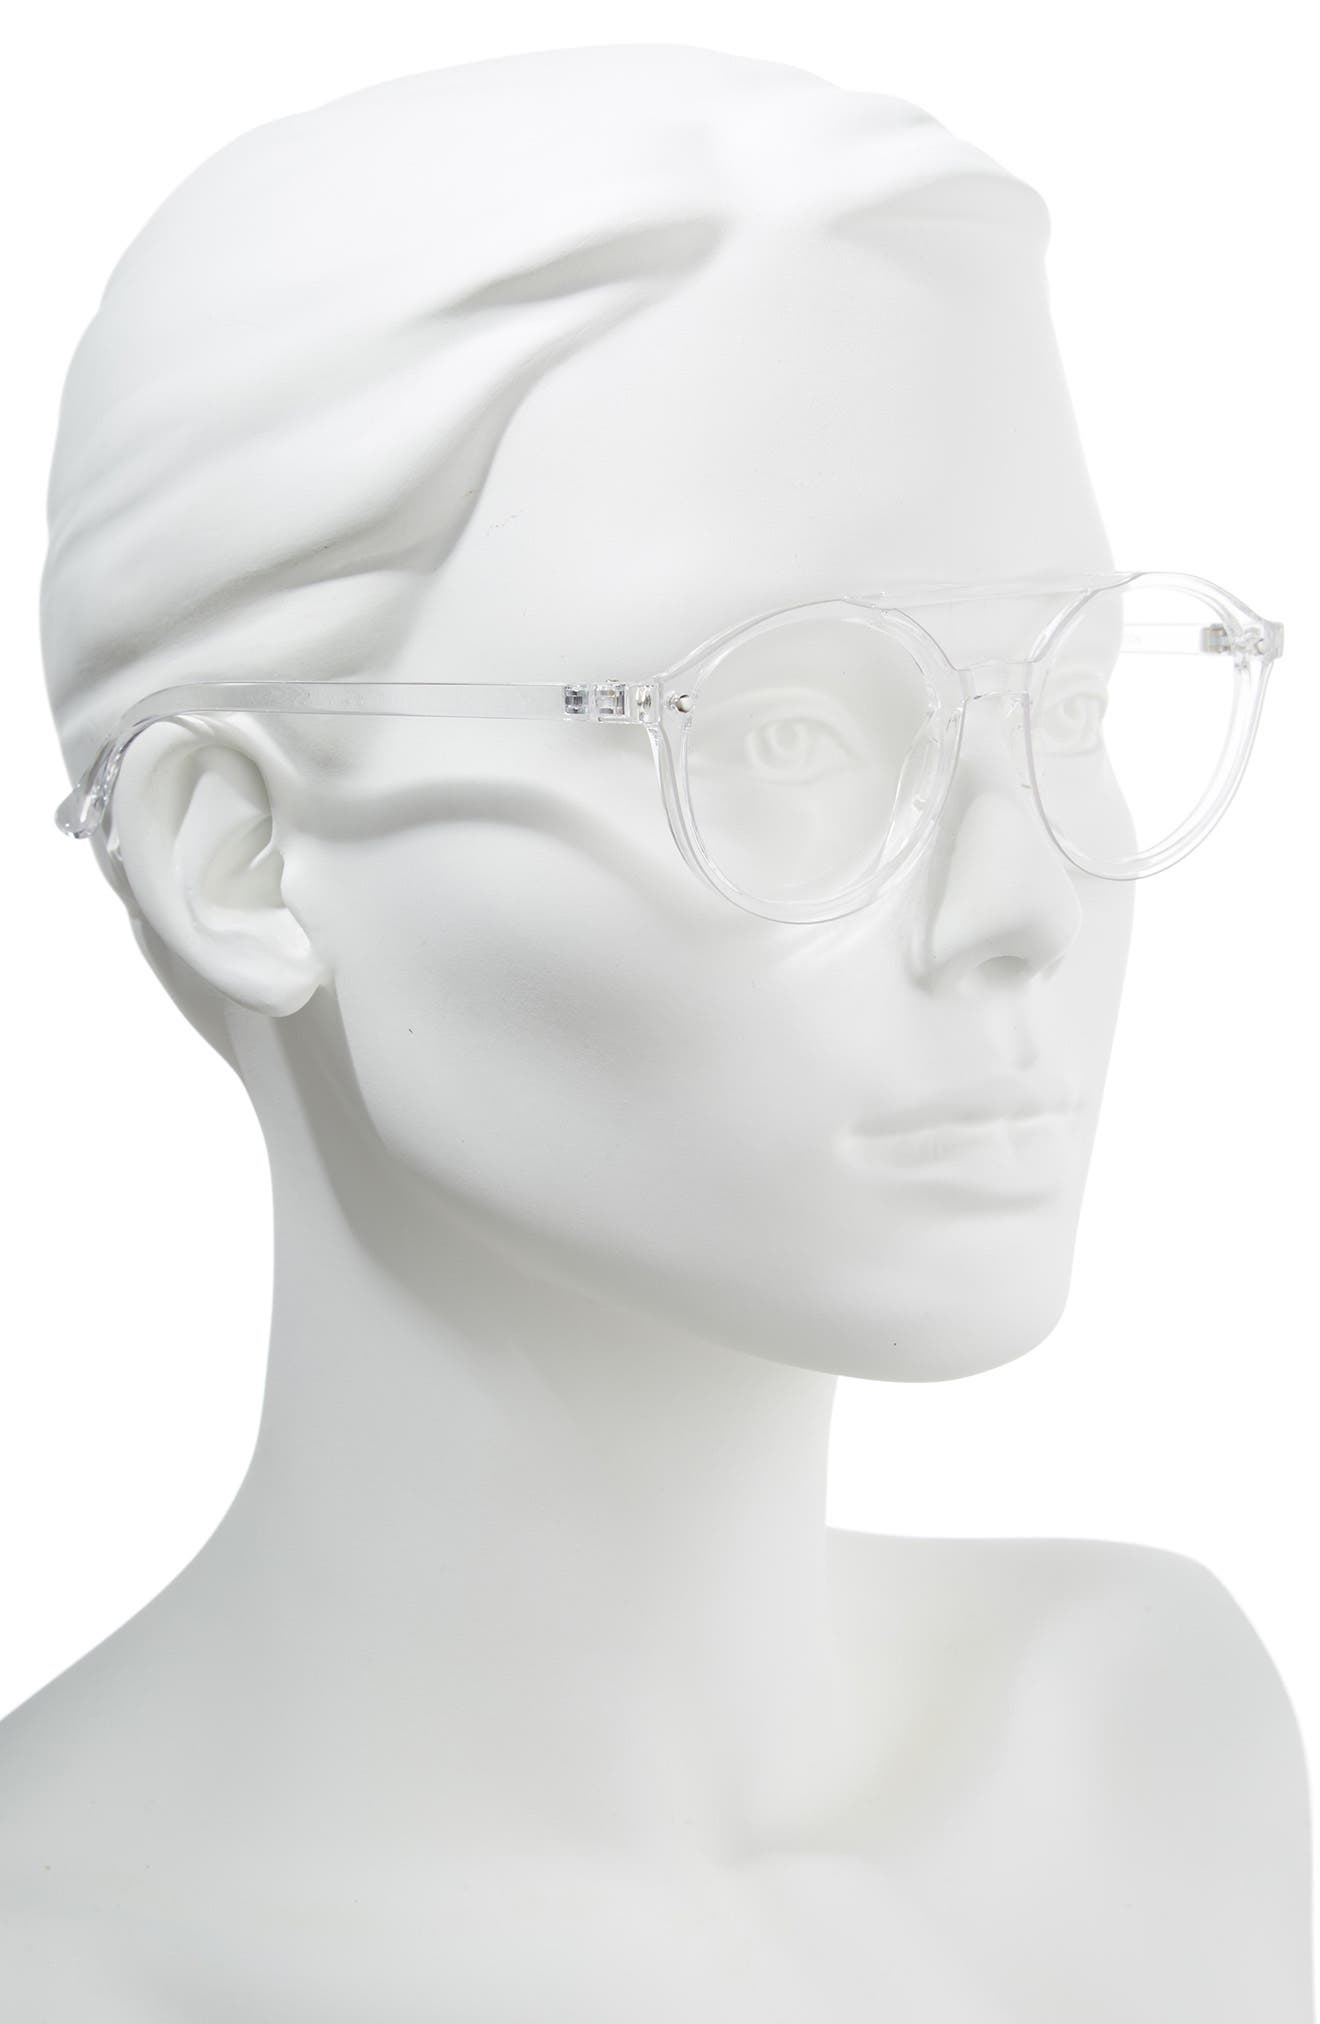 54mm Aviator Fashion Glasses,                             Alternate thumbnail 2, color,                             Clear